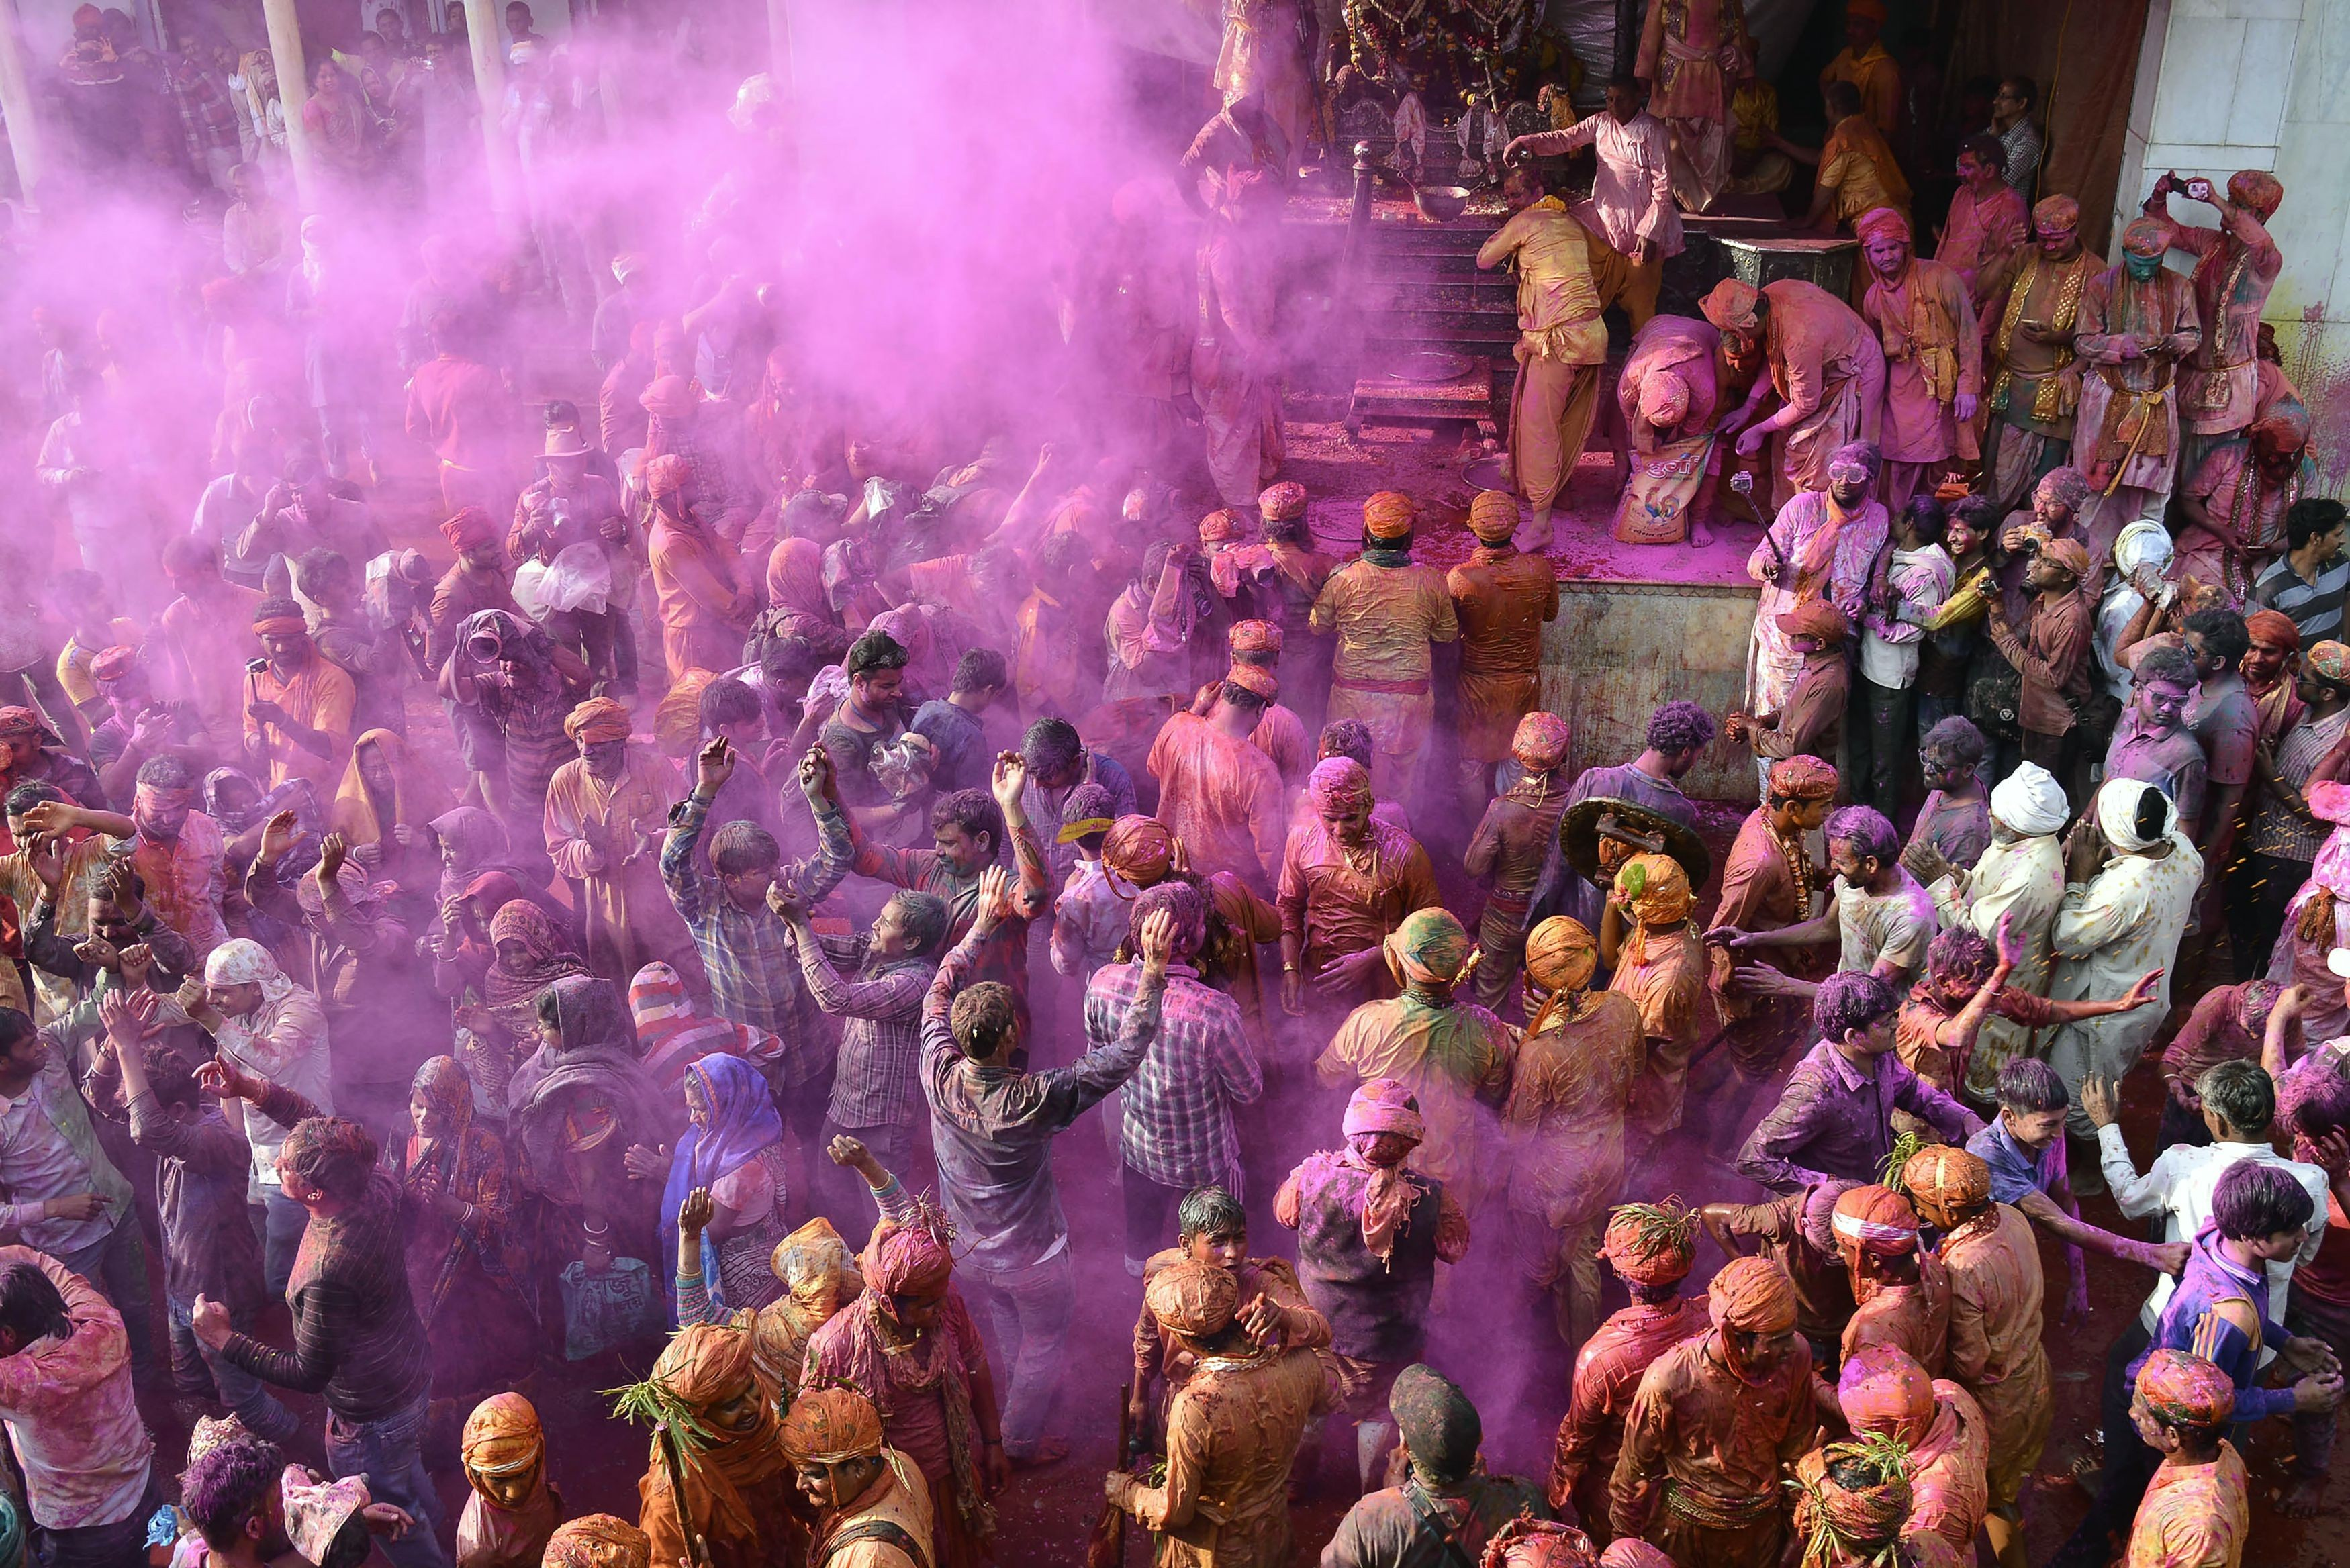 Here s What You Should Know About the Hindu Festival of Holi